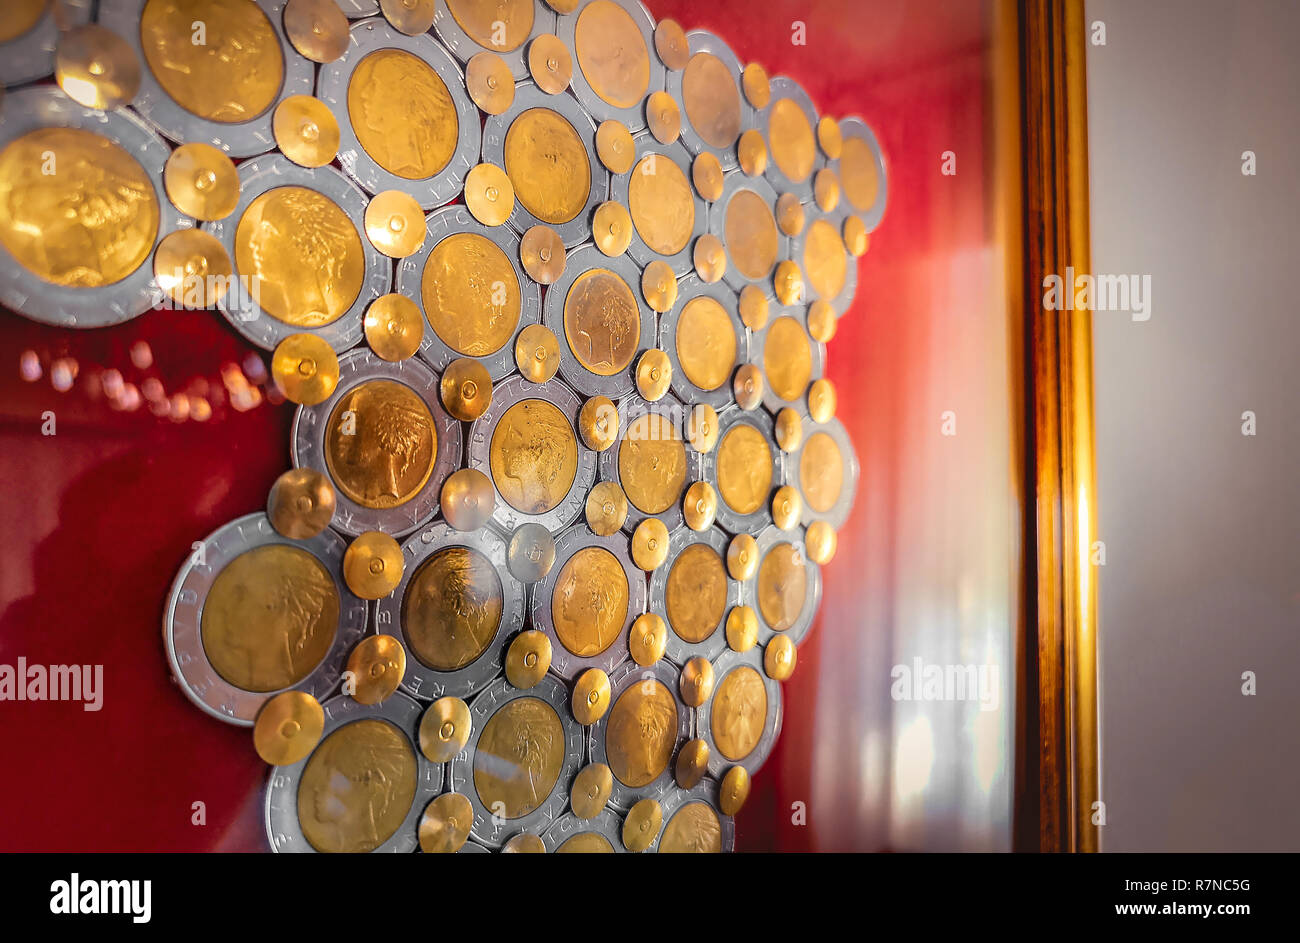 coin collecting background italian 500 lire collector numismatic backdrop - Stock Image